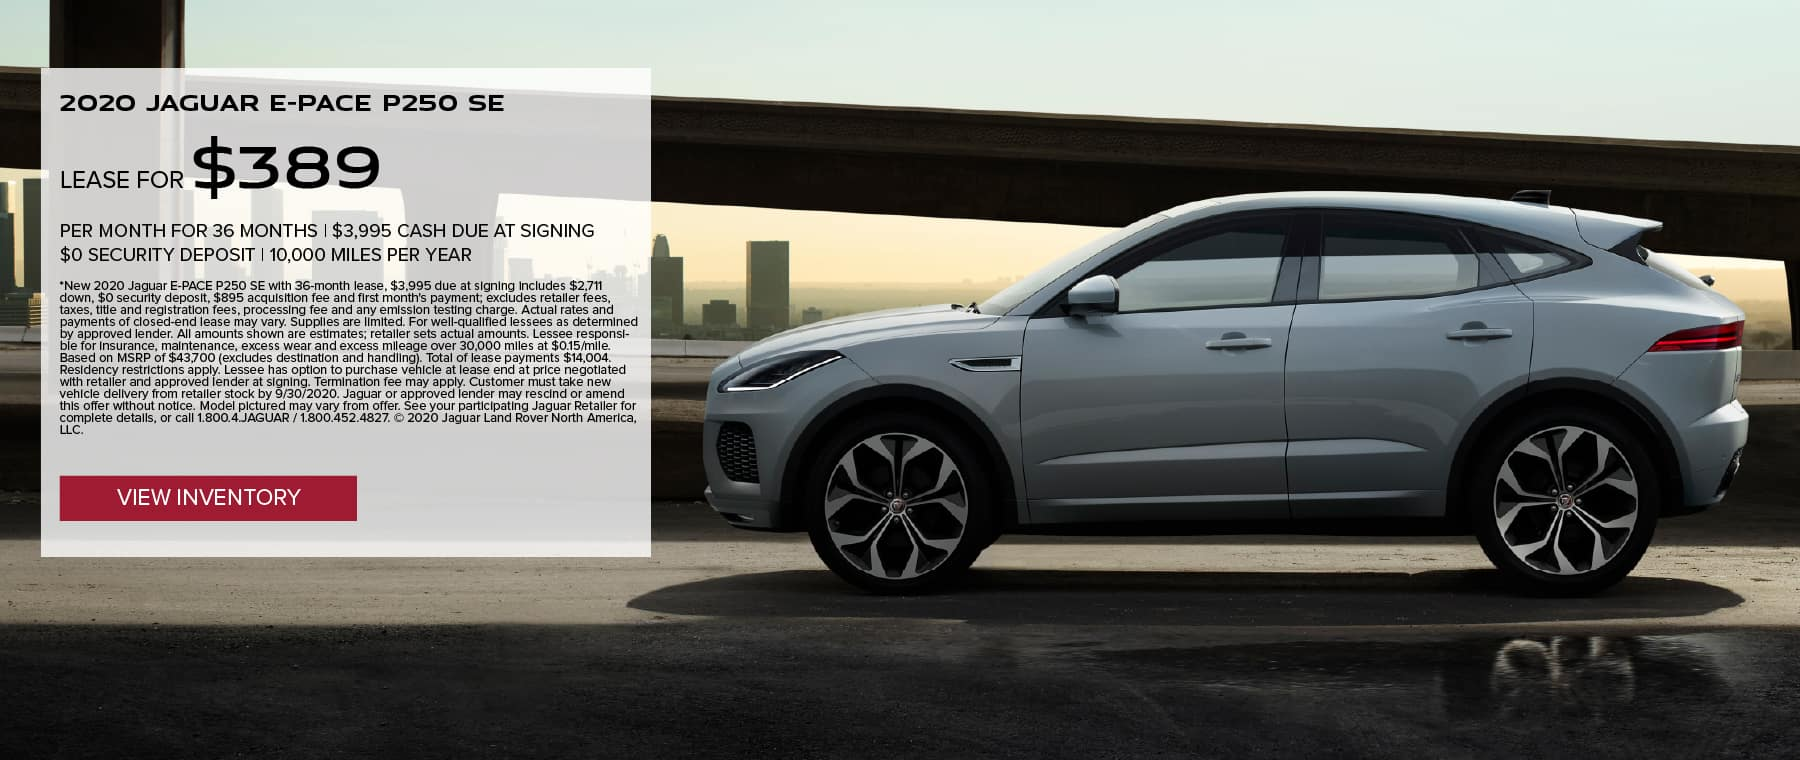 2020 JAGUAR E-PACE P250 SE. $389 PER MONTH. 36 MONTH LEASE TERM. $3,995 CASH DUE AT SIGNING. $0 SECURITY DEPOSIT. 10,000 MILES PER YEAR. EXCLUDES RETAILER FEES, TAXES, TITLE AND REGISTRATION FEES, PROCESSING FEE AND ANY EMISSION TESTING CHARGE. OFFER ENDS 9/30/2020. VIEW INVENTORY. WHITE JAGUAR E-PACE DRIVING DOWN ROAD IN CITY.